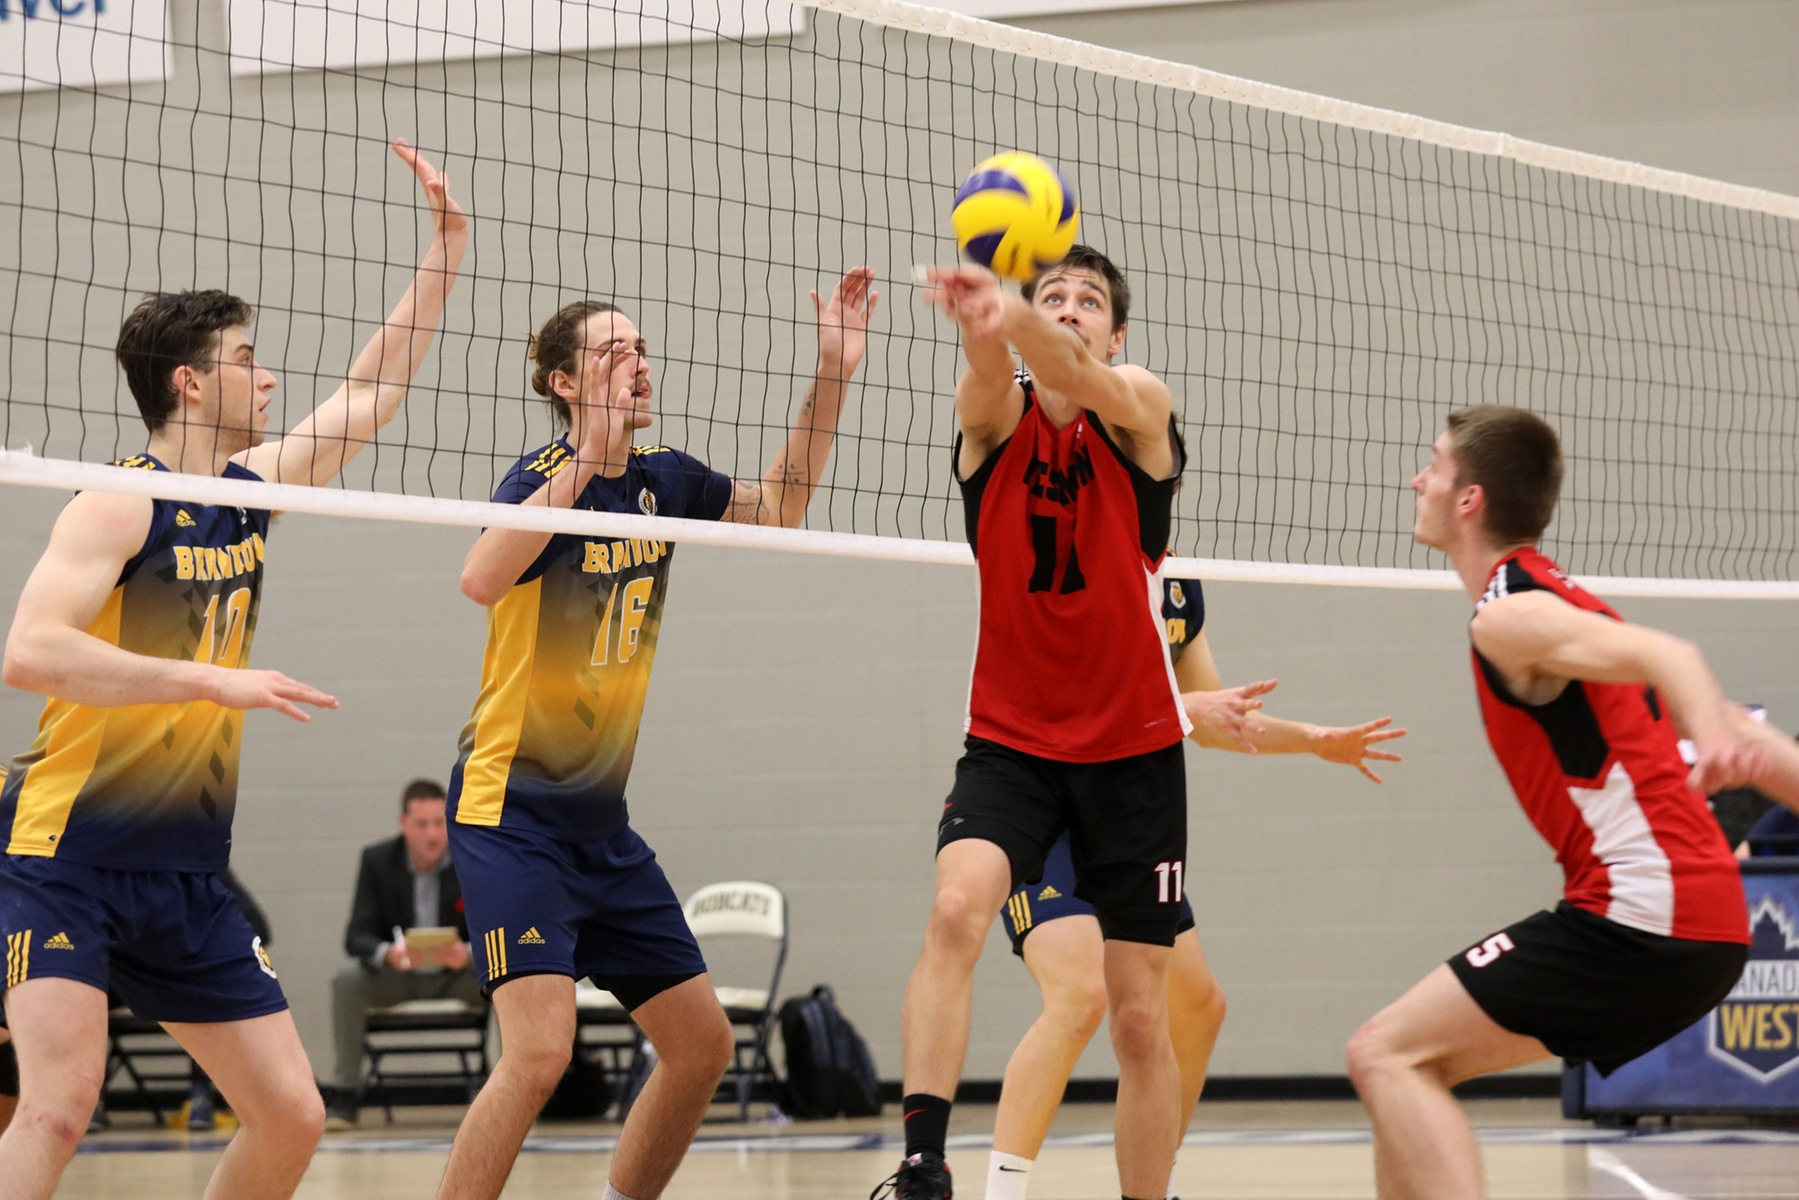 Mikael Clegg (centre) bumps a set in front of teammate Keegan Teetaert during the Wesmen loss to the Brandon Bobcats in Brandon, Man., on Thursday, Nov. 7, 2019. (Milana Paddock/Bobcat Athletics)